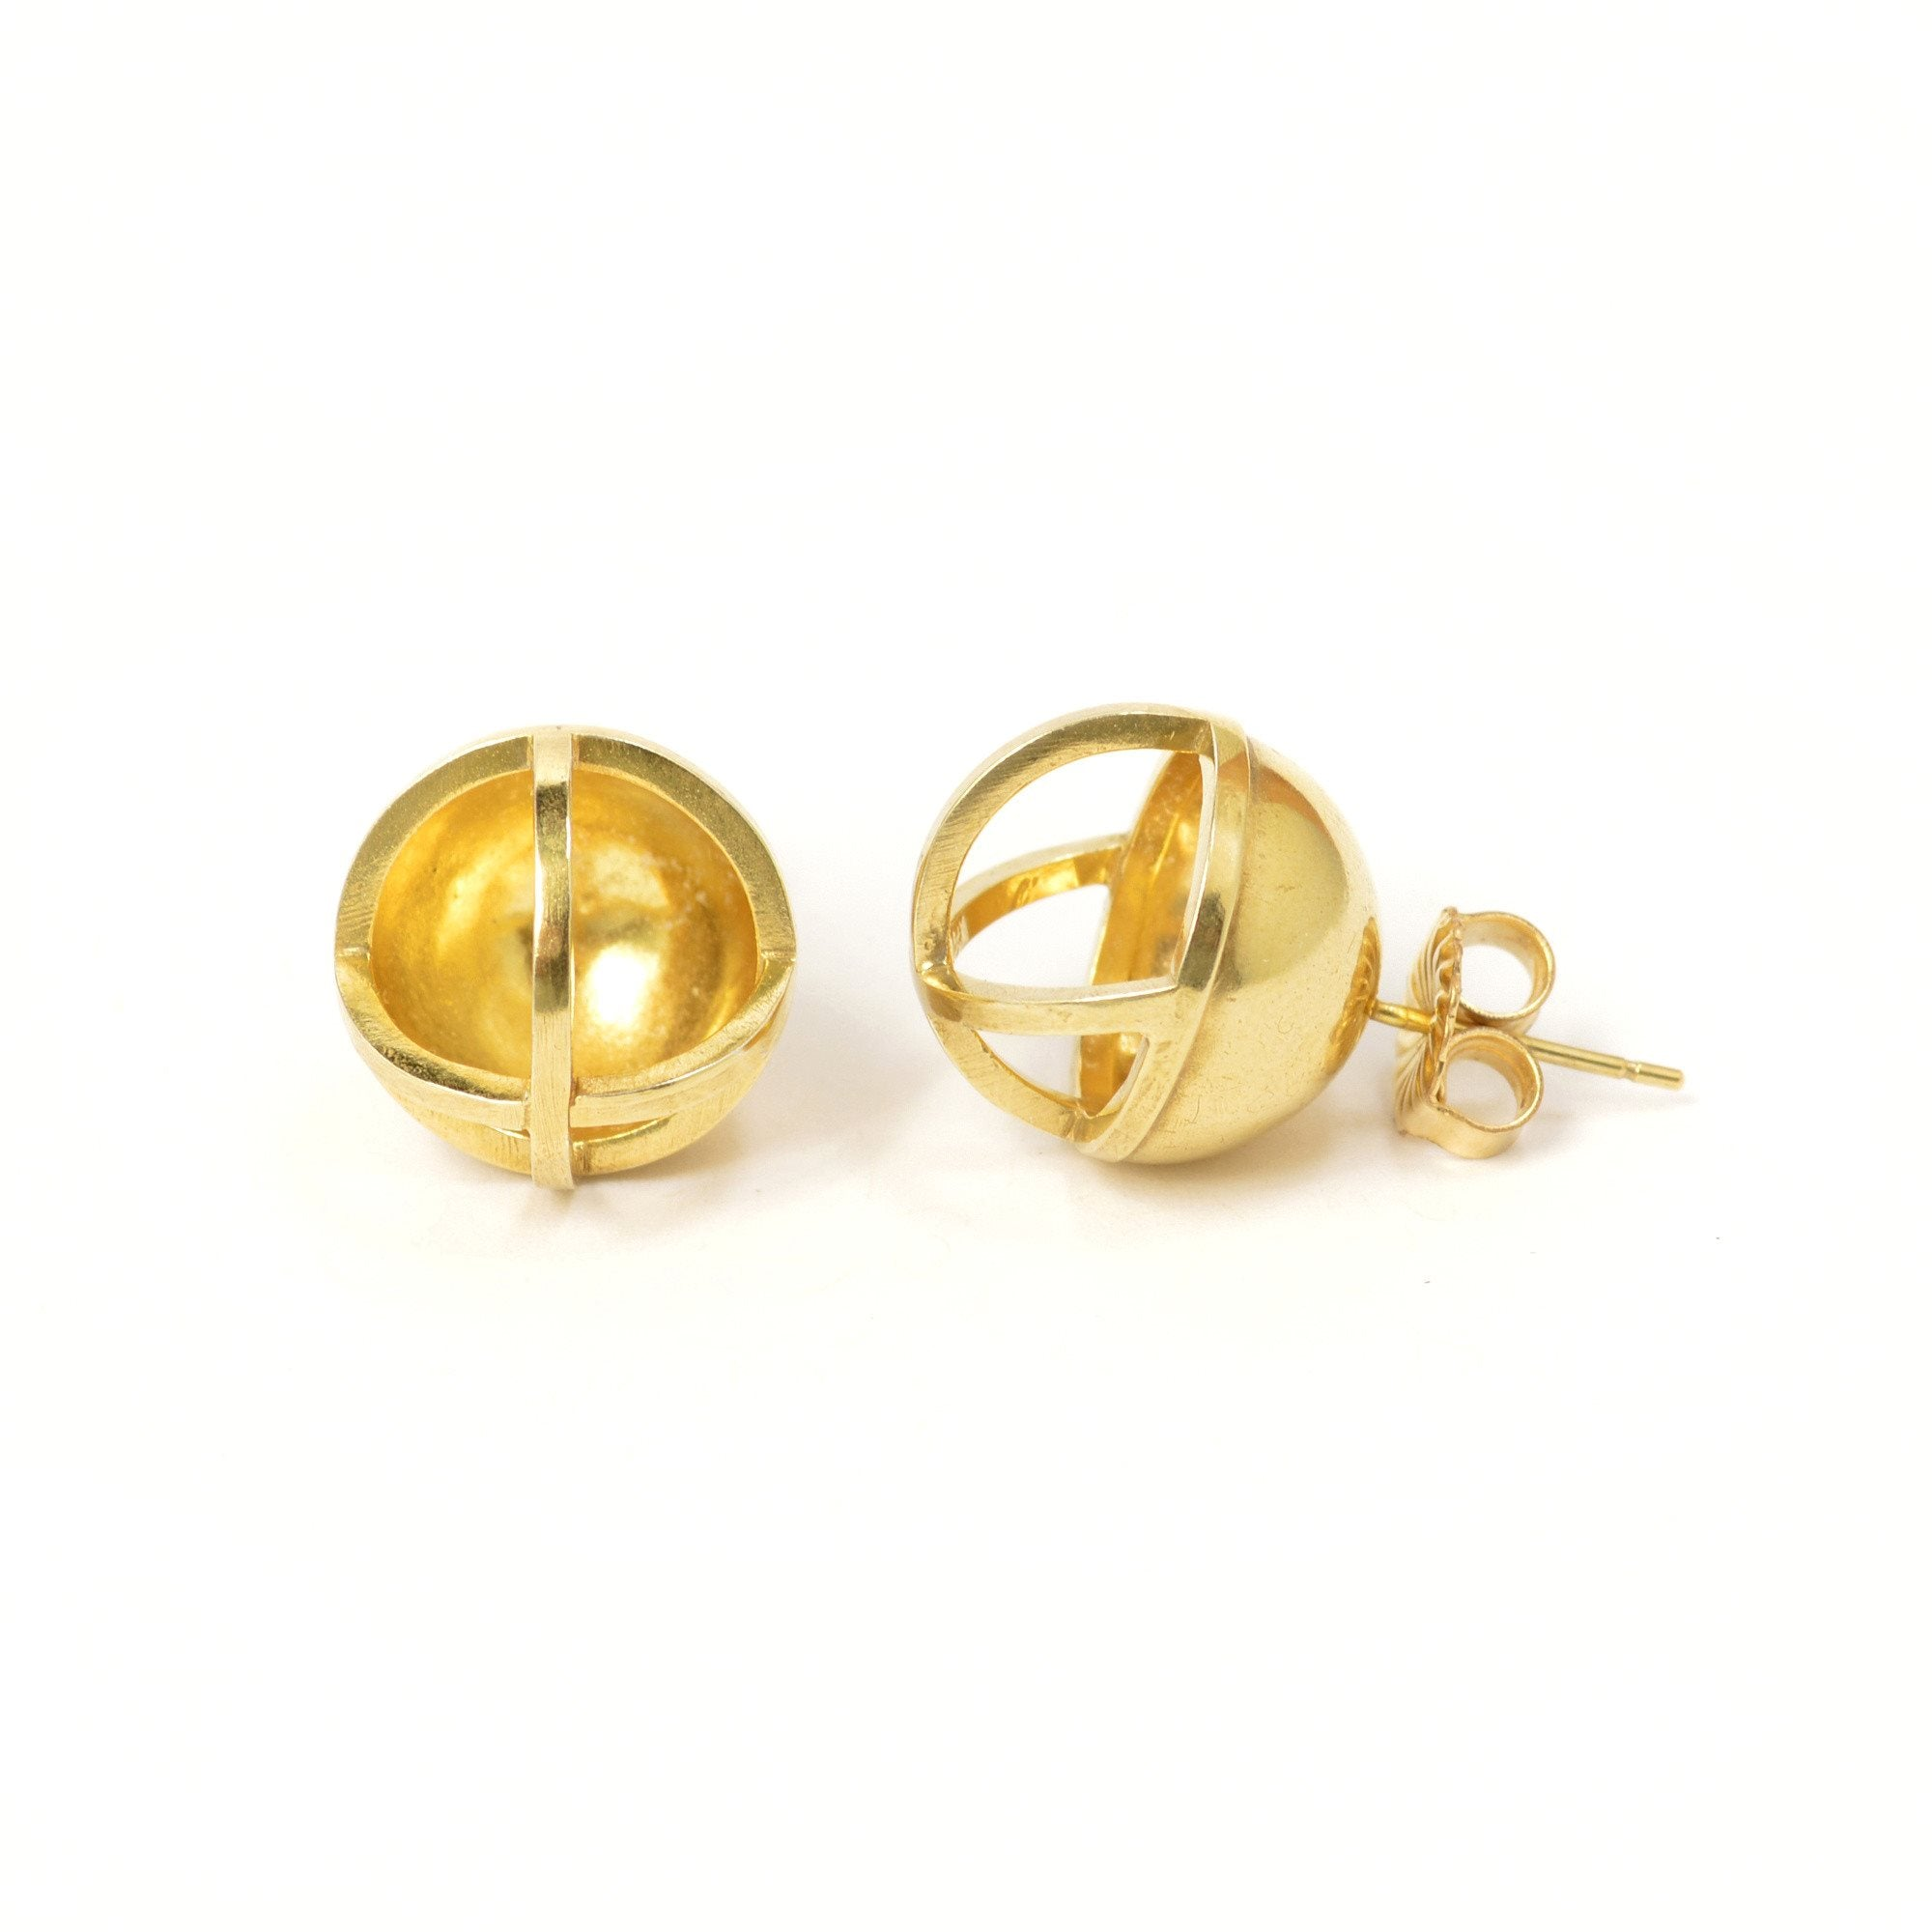 Concave Sphere Stud Earrings in 14k gold